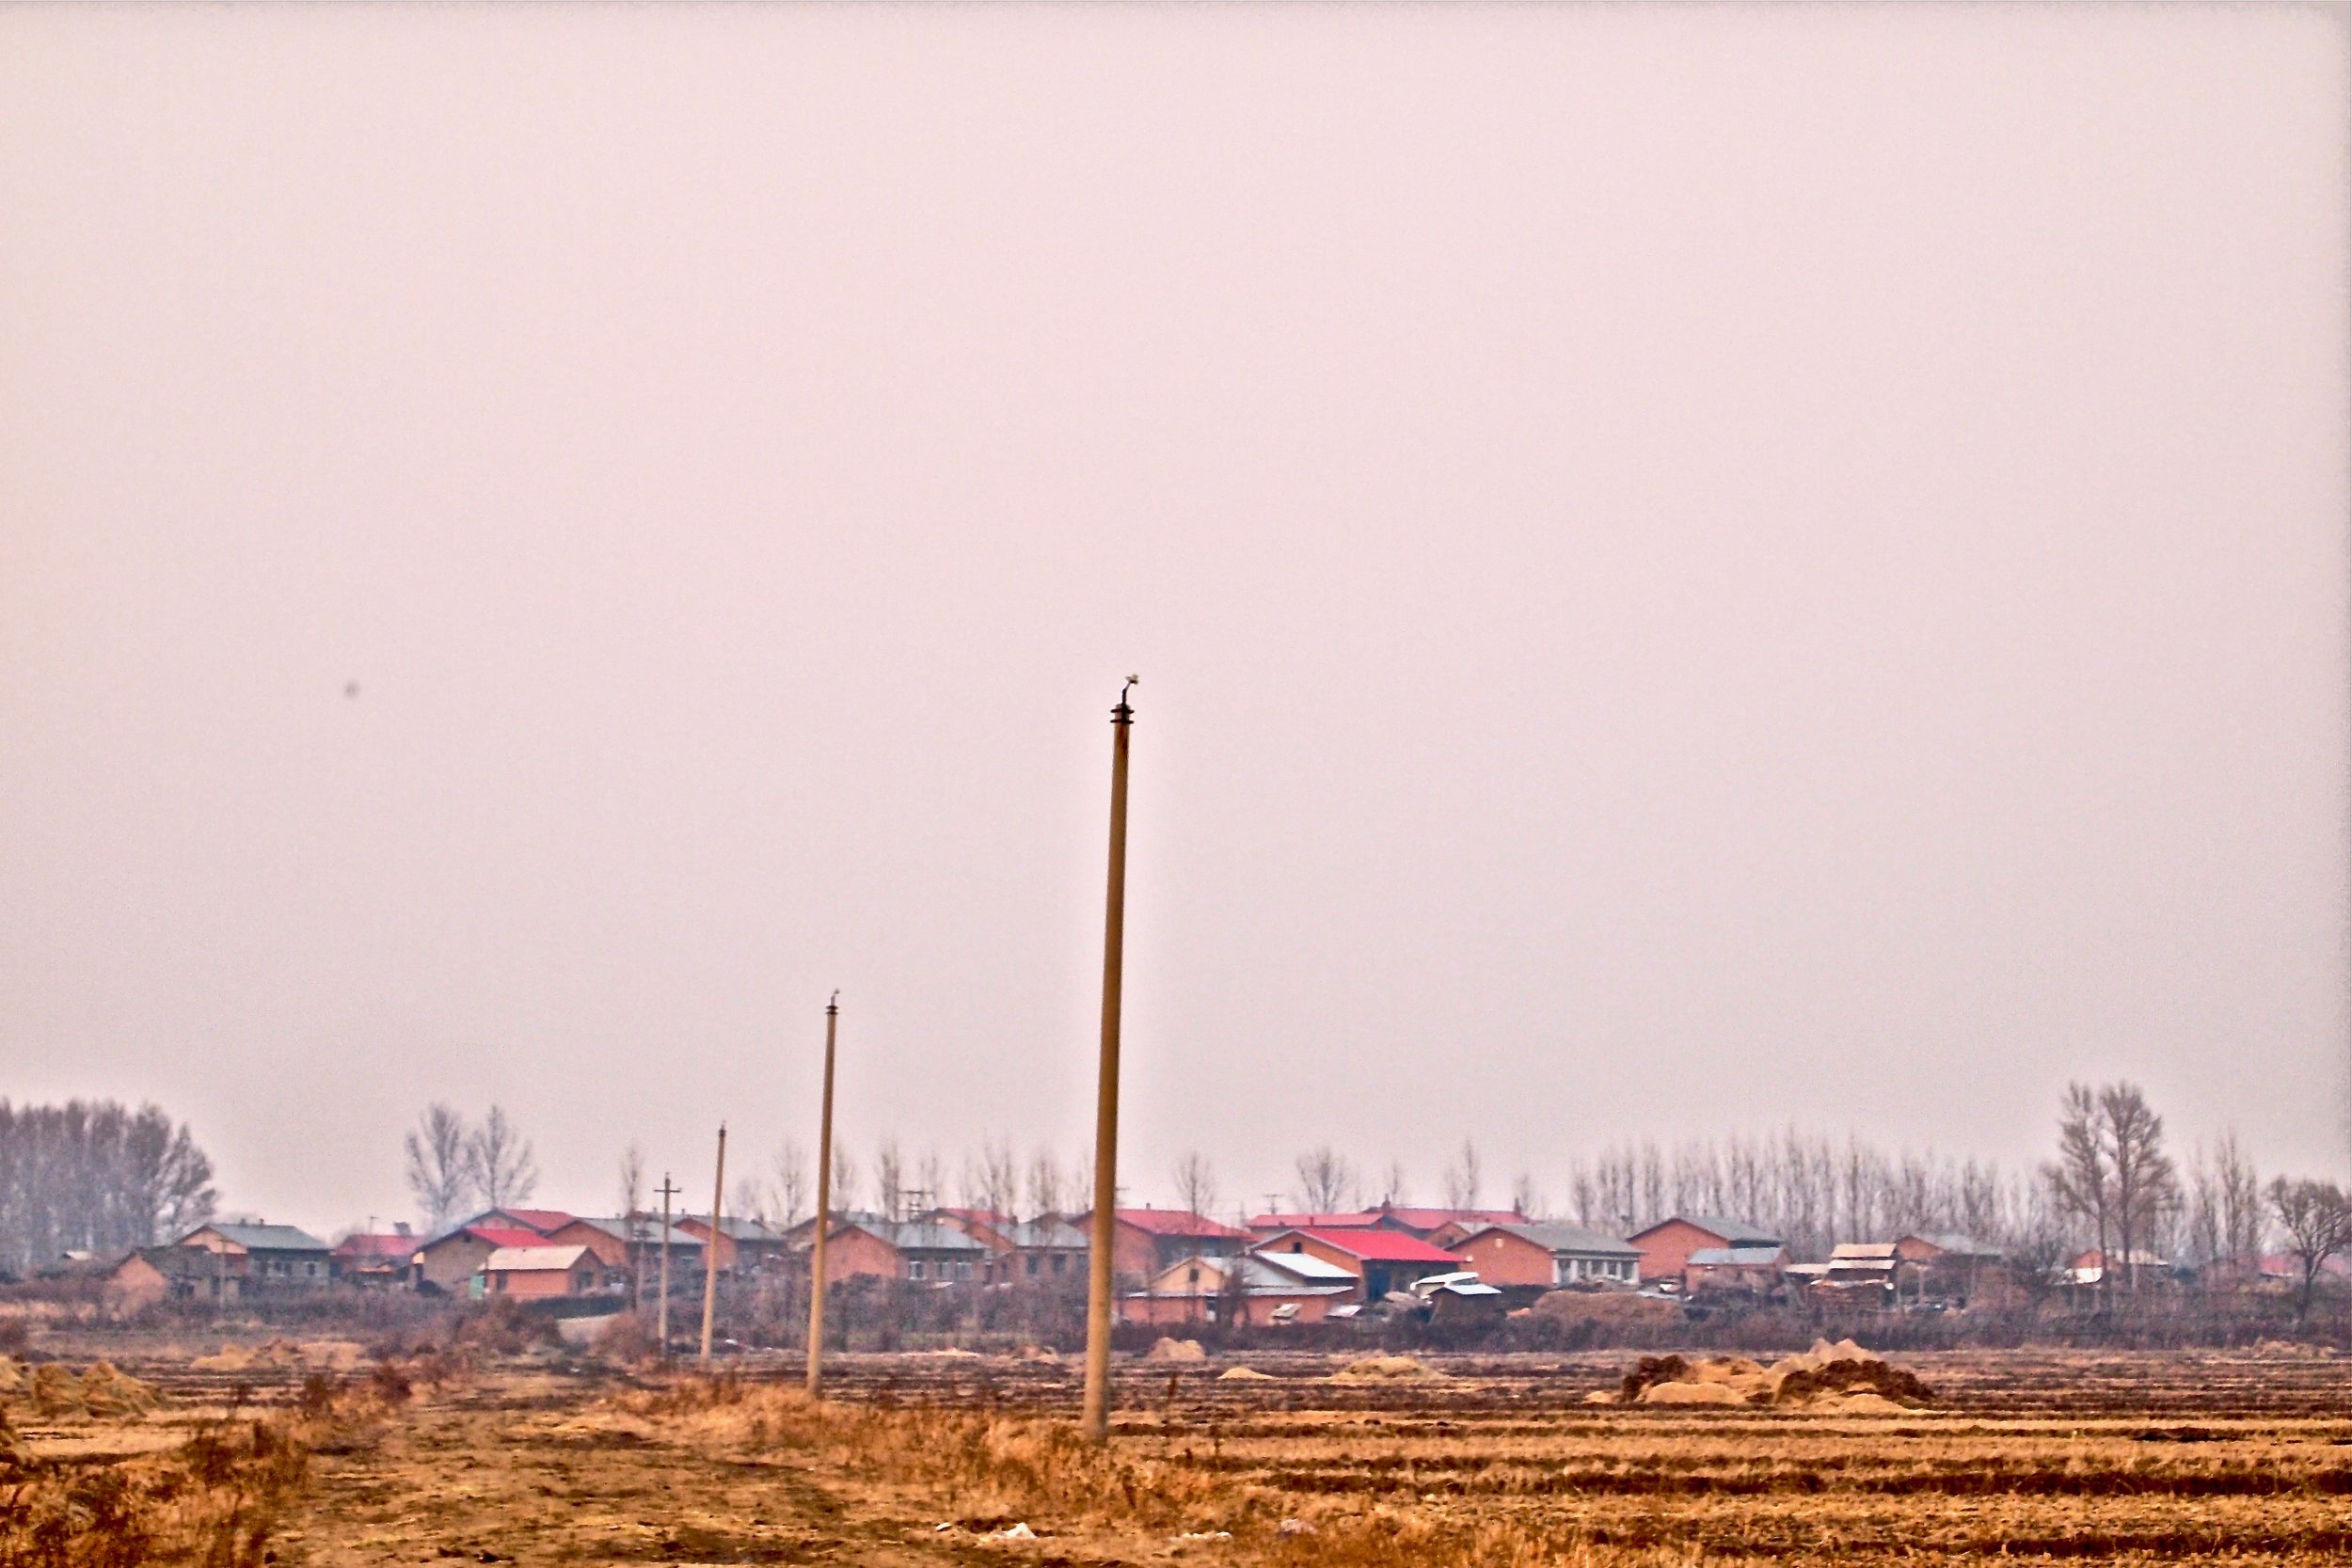 Poles from which the government cut power lines leading to Qinglongshan in Heilongjiang province, China. (C) Remko Tanis